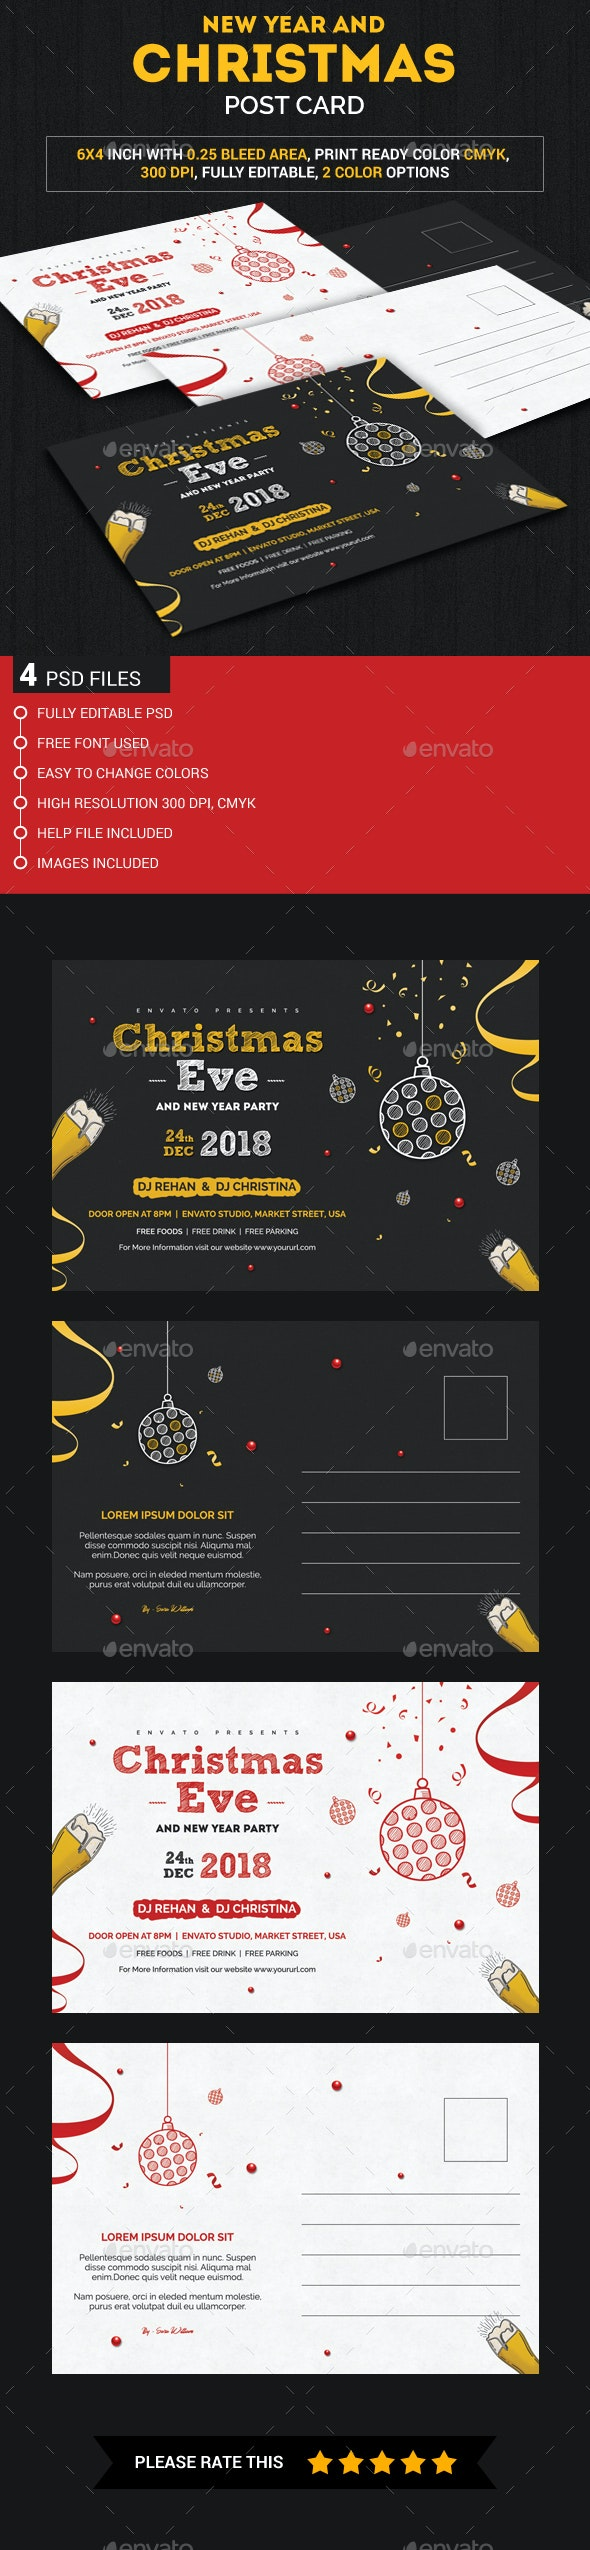 Christmas and New year Post Card - Invitations Cards & Invites